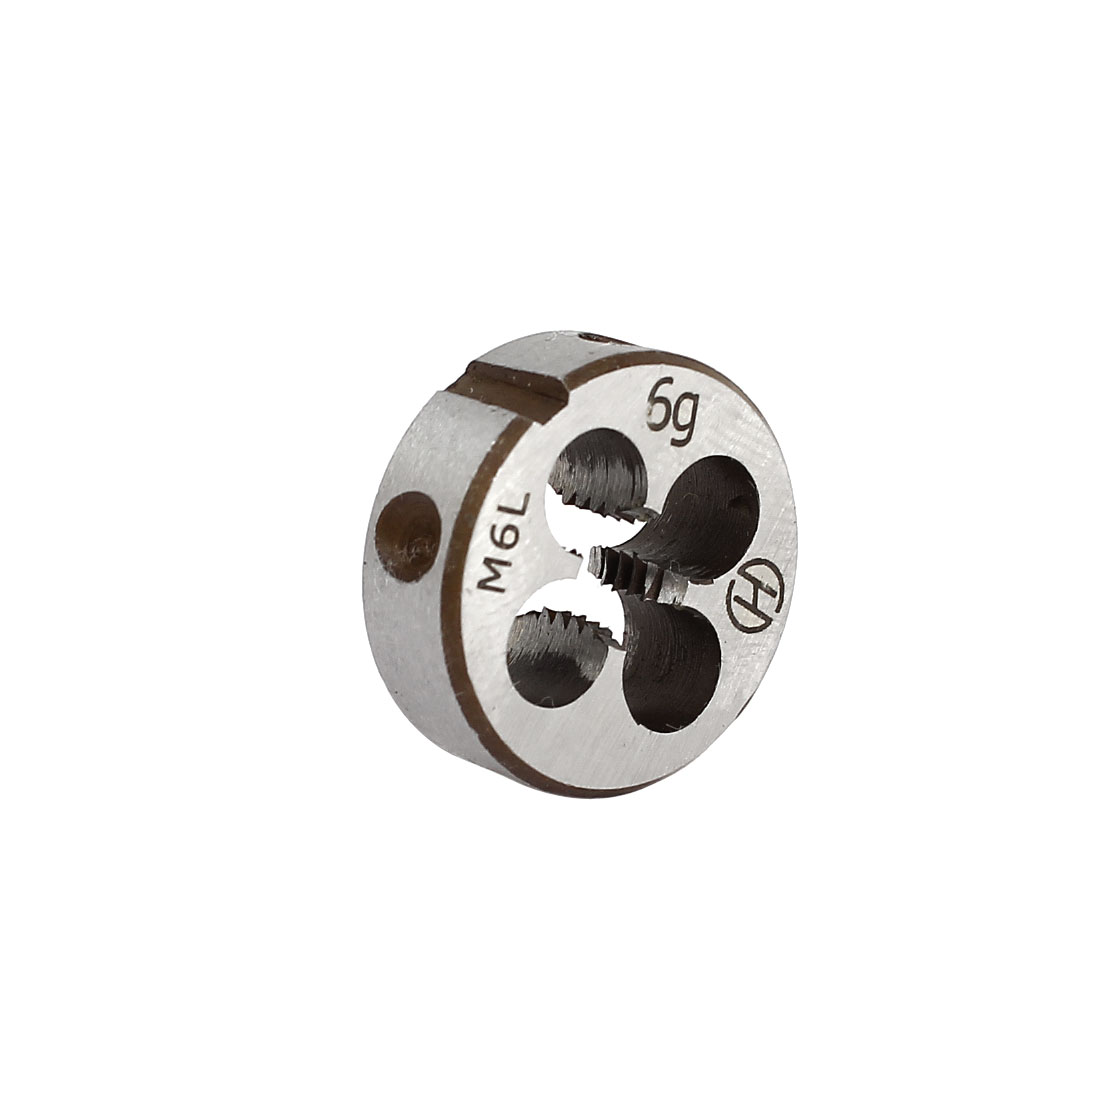 M6 Metric Screw 20mm OD Dia Steel Round Threading Die Thread Cutting Tool